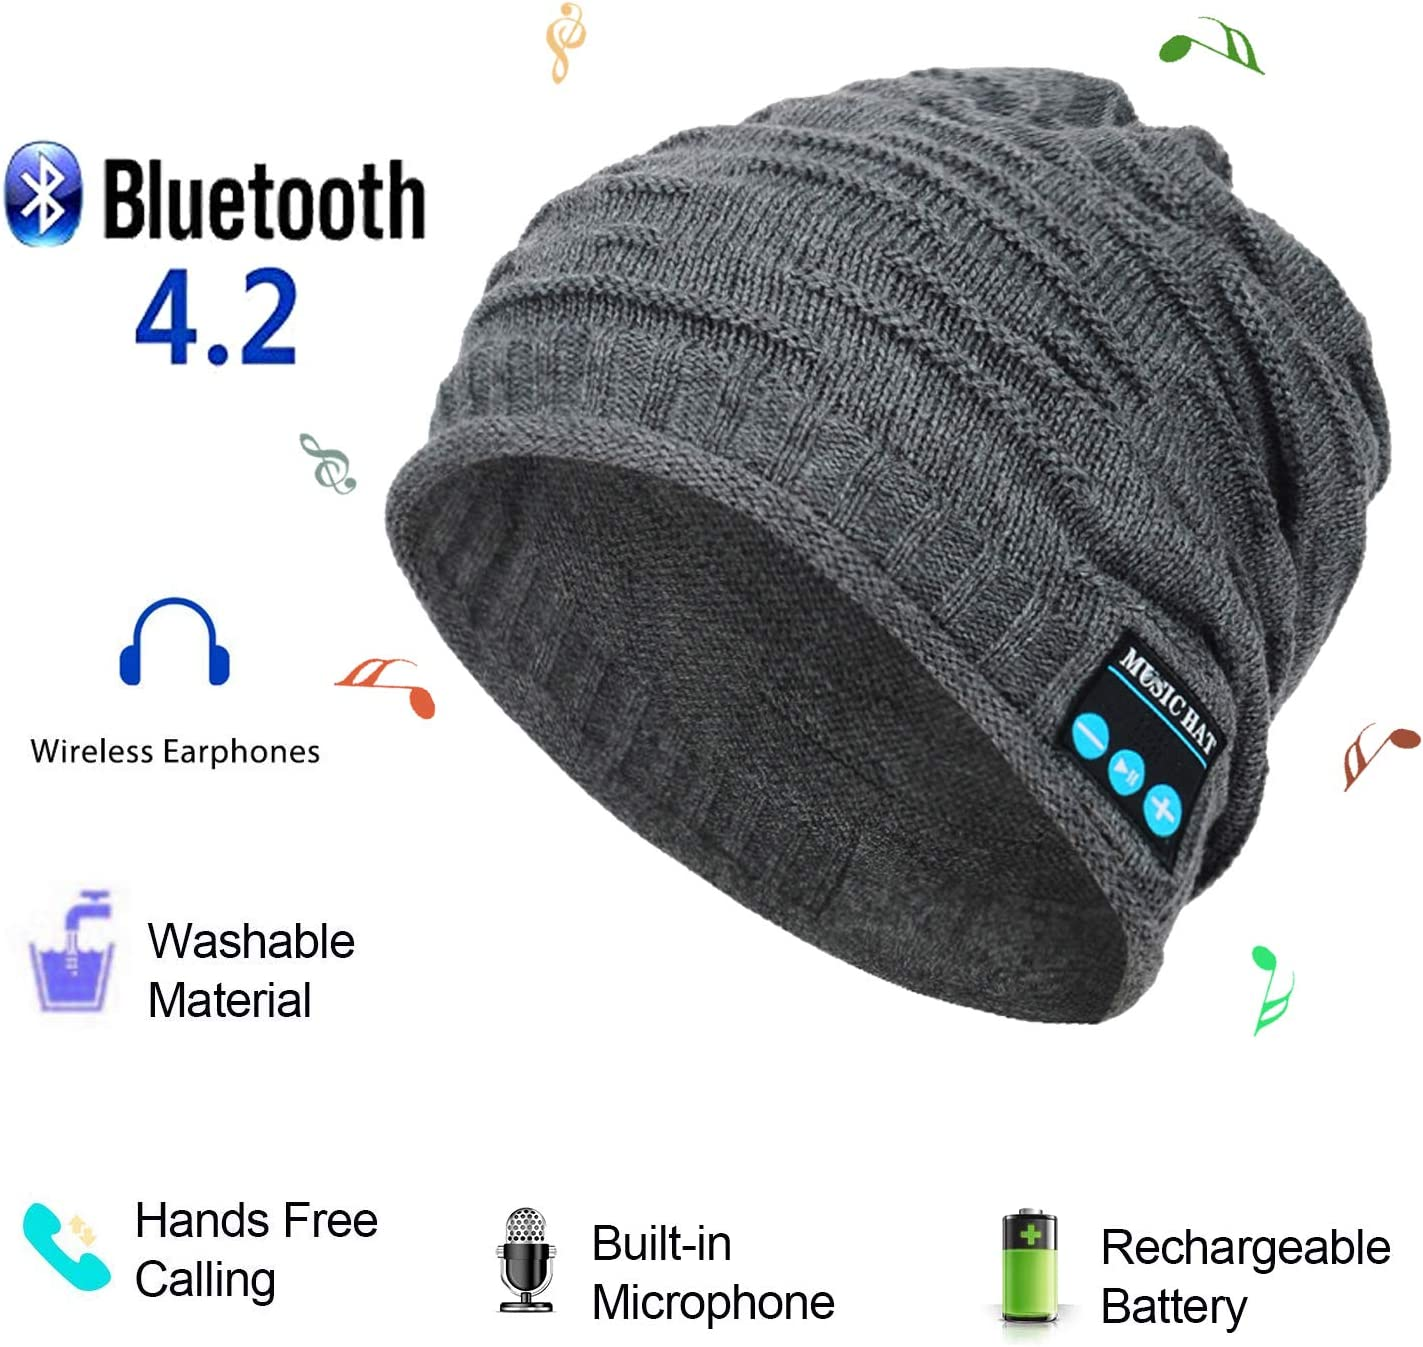 Bluetooth Beanie Music Hat,Wireless Headphones Musical Speaker Wave Pattern Knitted Cap for Winter Walking Dog Winter Sports Traveling Exercise Running Waiting Bus (Grey)